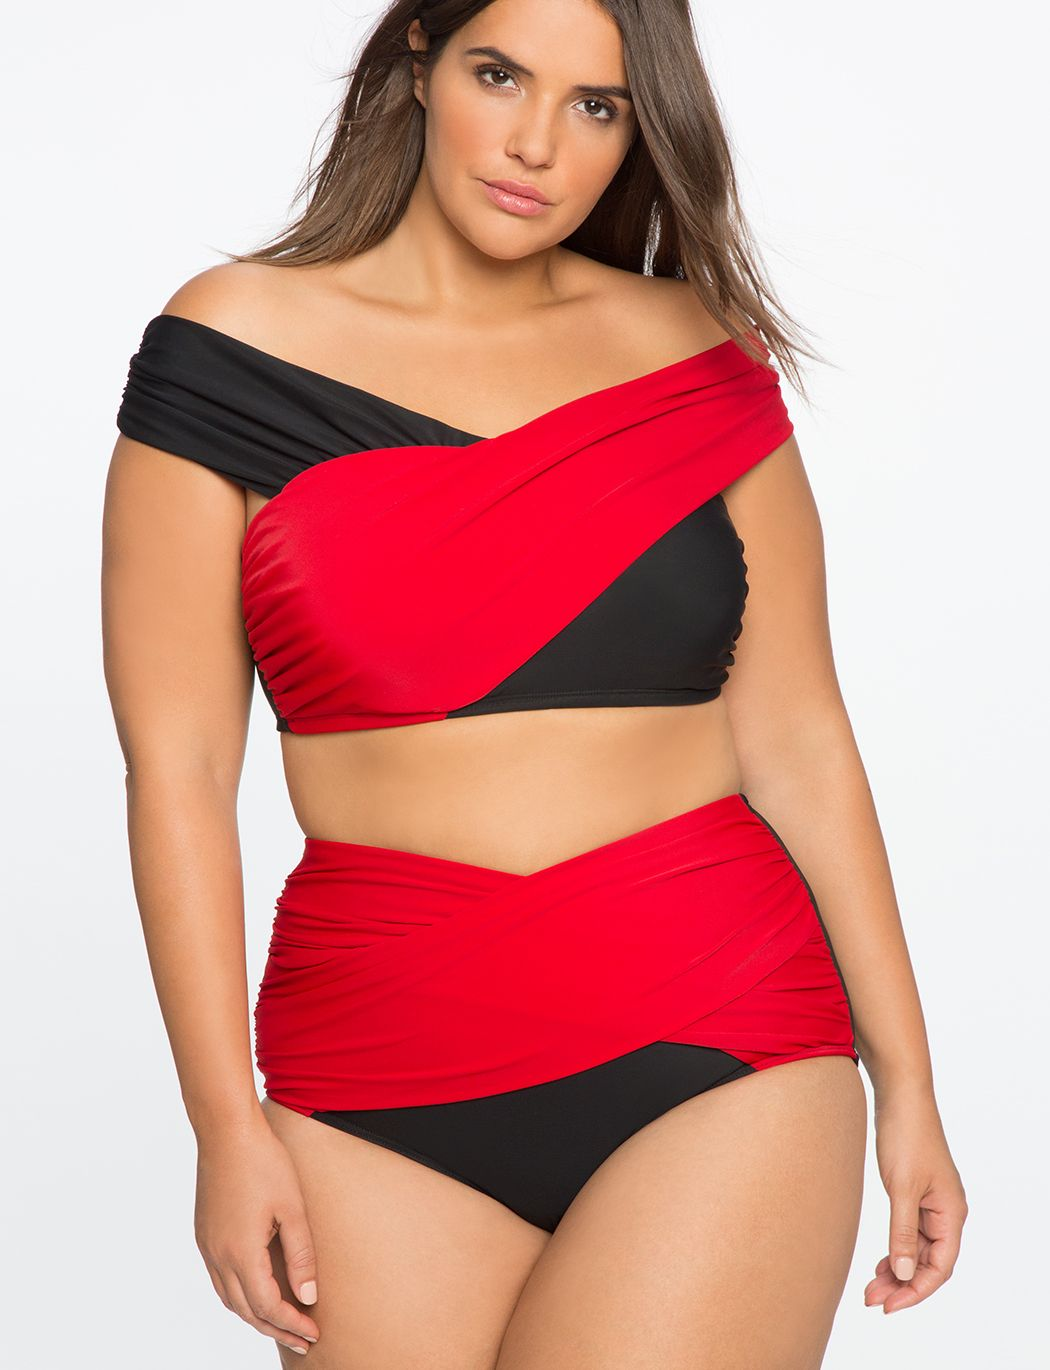 a042b748f8992 Plus Size Swimwear - Plus Size Off The Shoulder Cross Front Bikini Sexy  full figured swimsuit (plus size)  fatkini